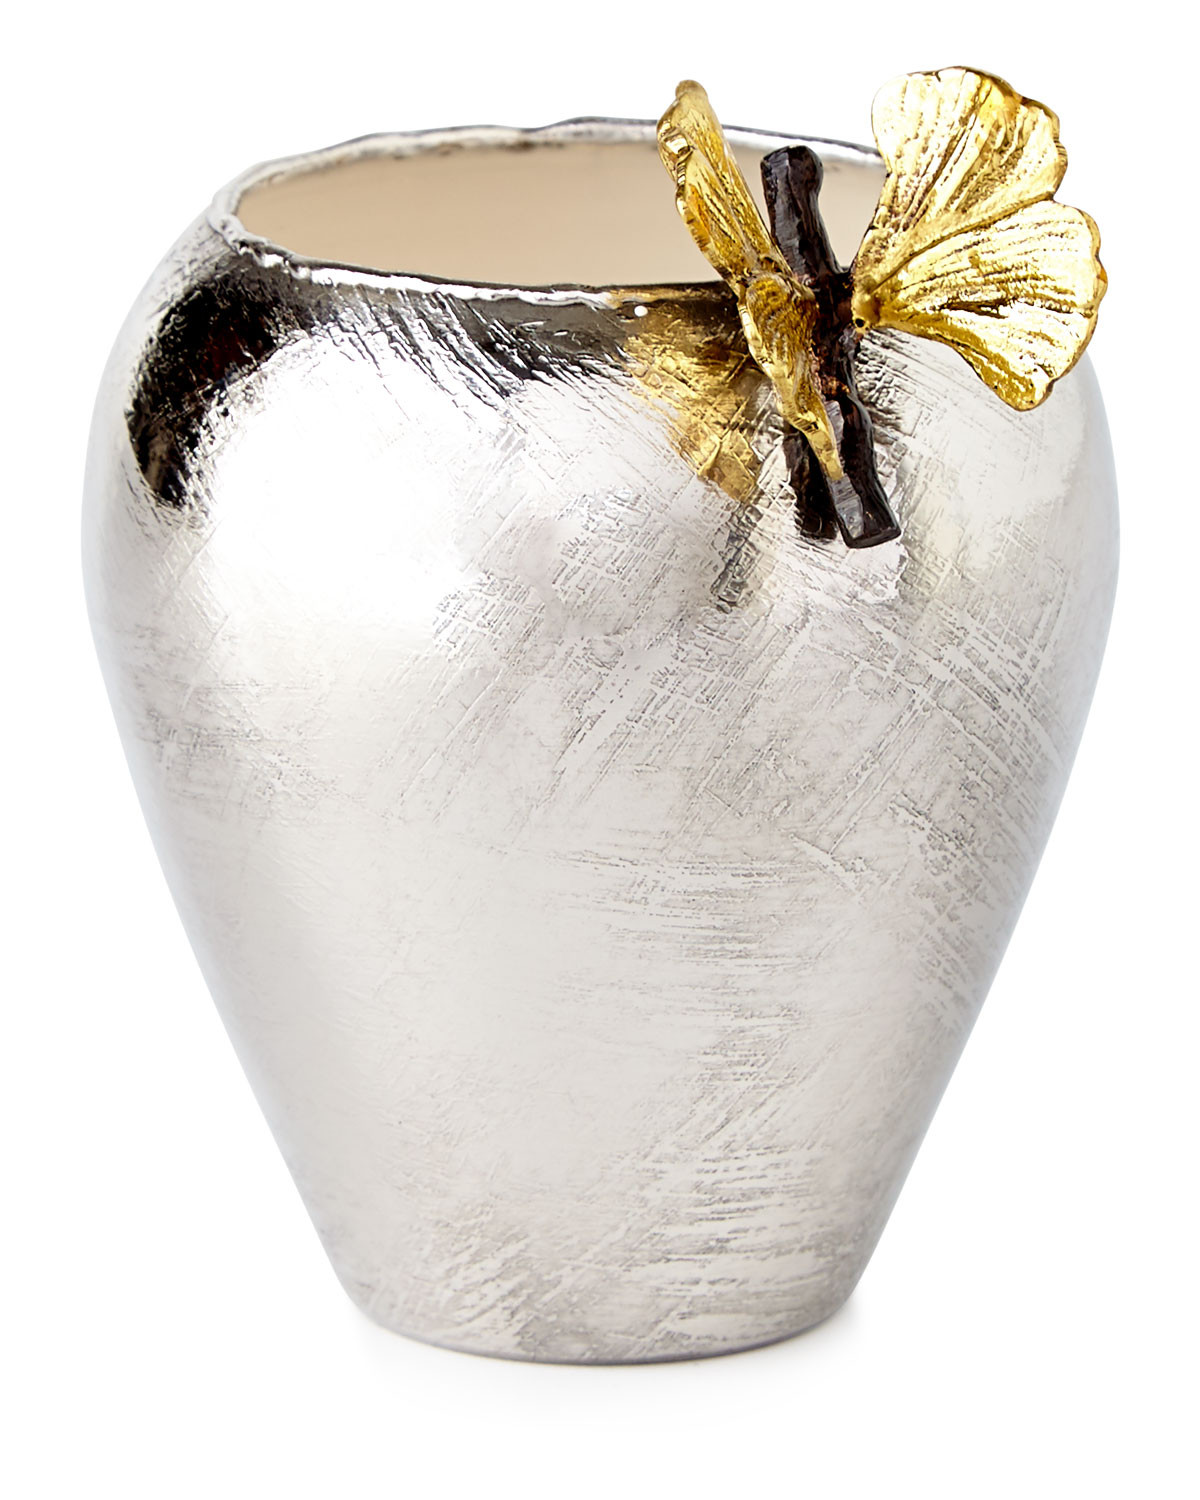 michael aram vase sale of michael aram butterfly gingko bud vase neiman marcus in butterfly gingko bud vase